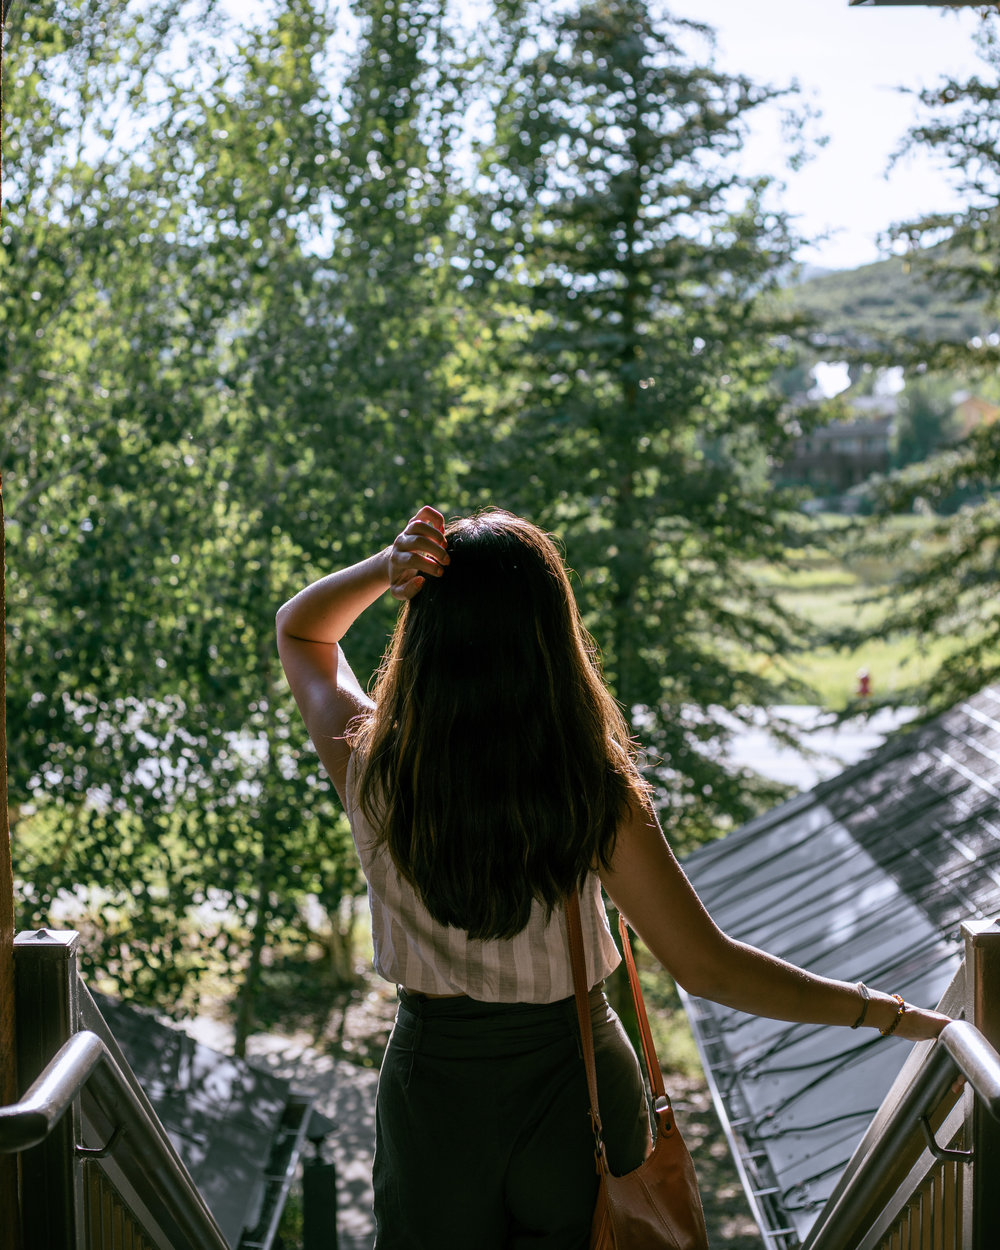 Rachel Off Duty: Woman at The Lodges at Deer Valley